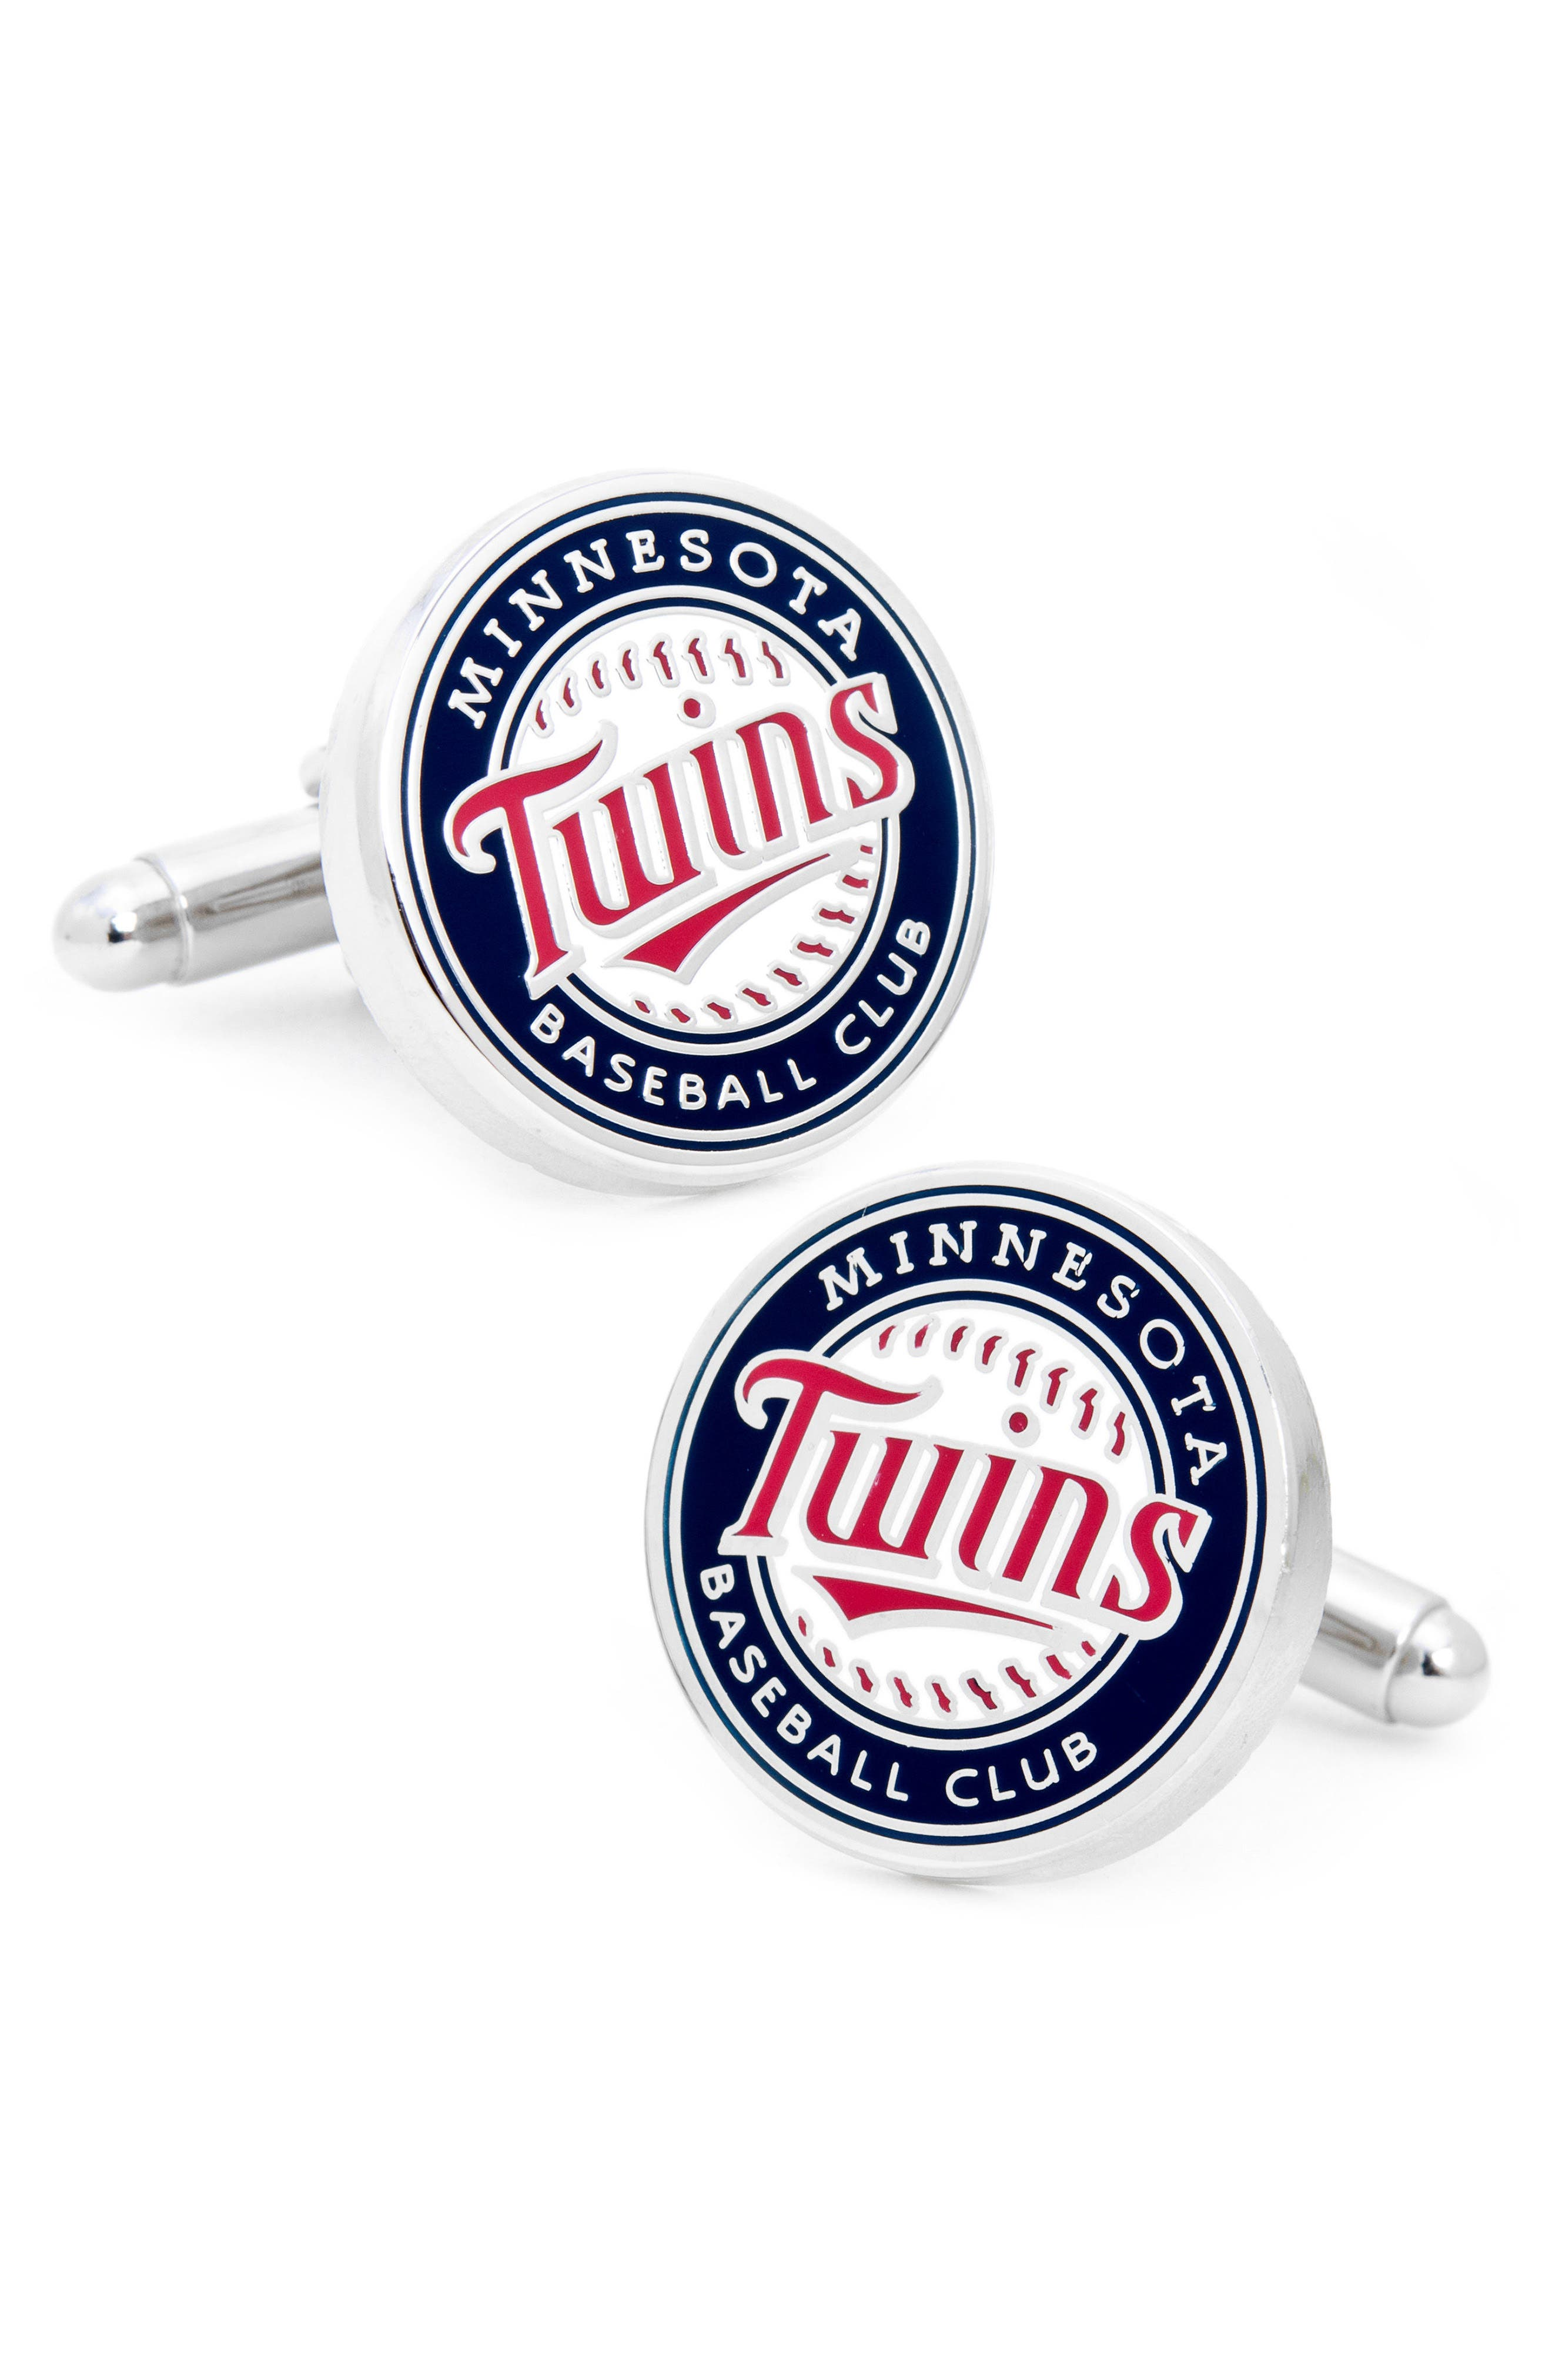 Minnesota Twins Cuff Links,                         Main,                         color, Blue/ Red/ White